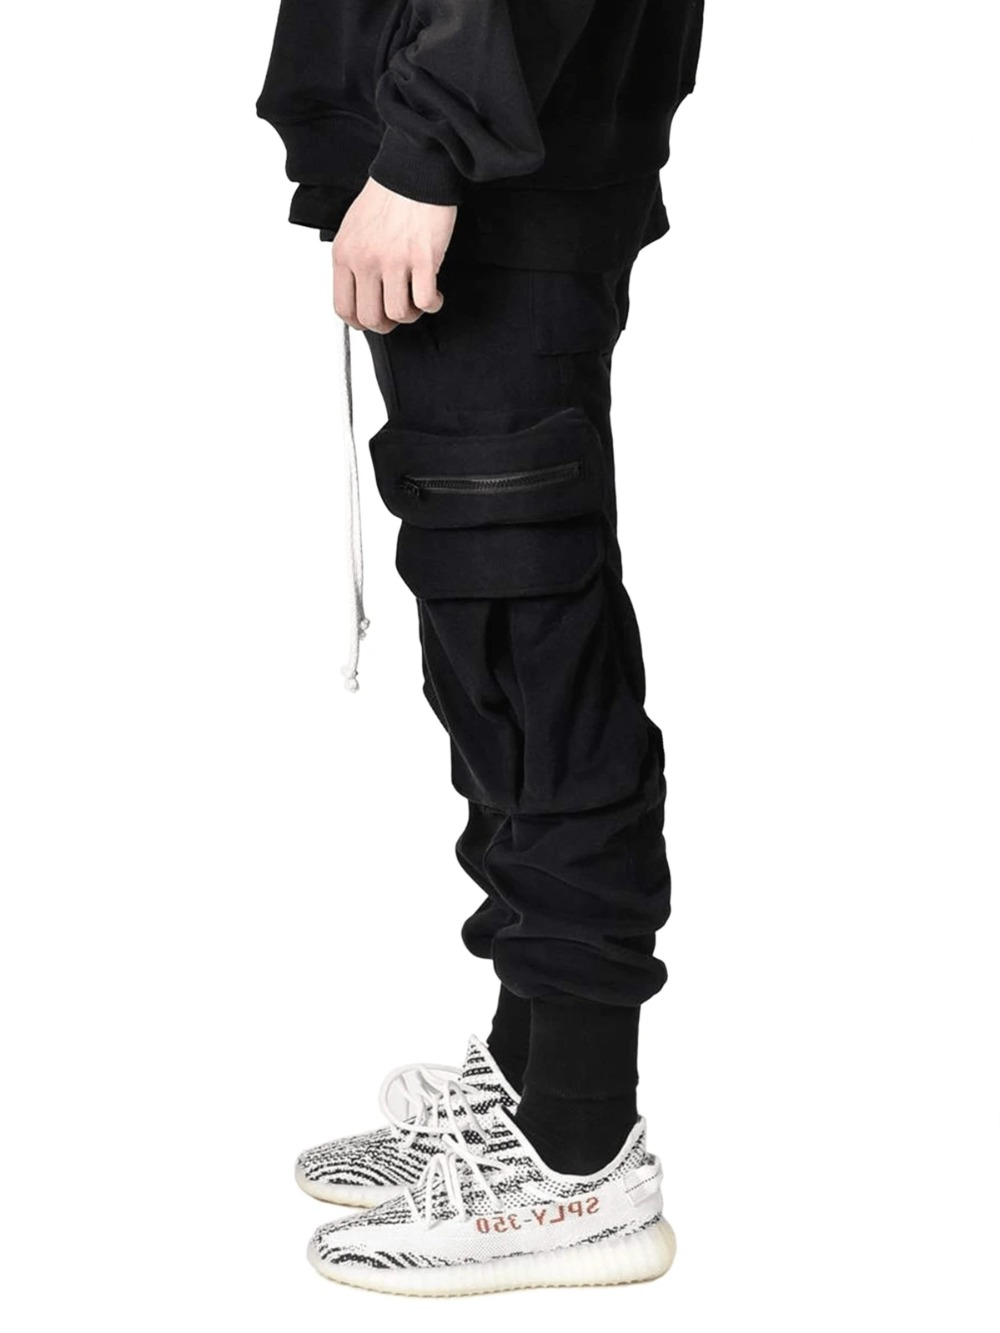 cargosweatpants-black_side_1200x1600.webp